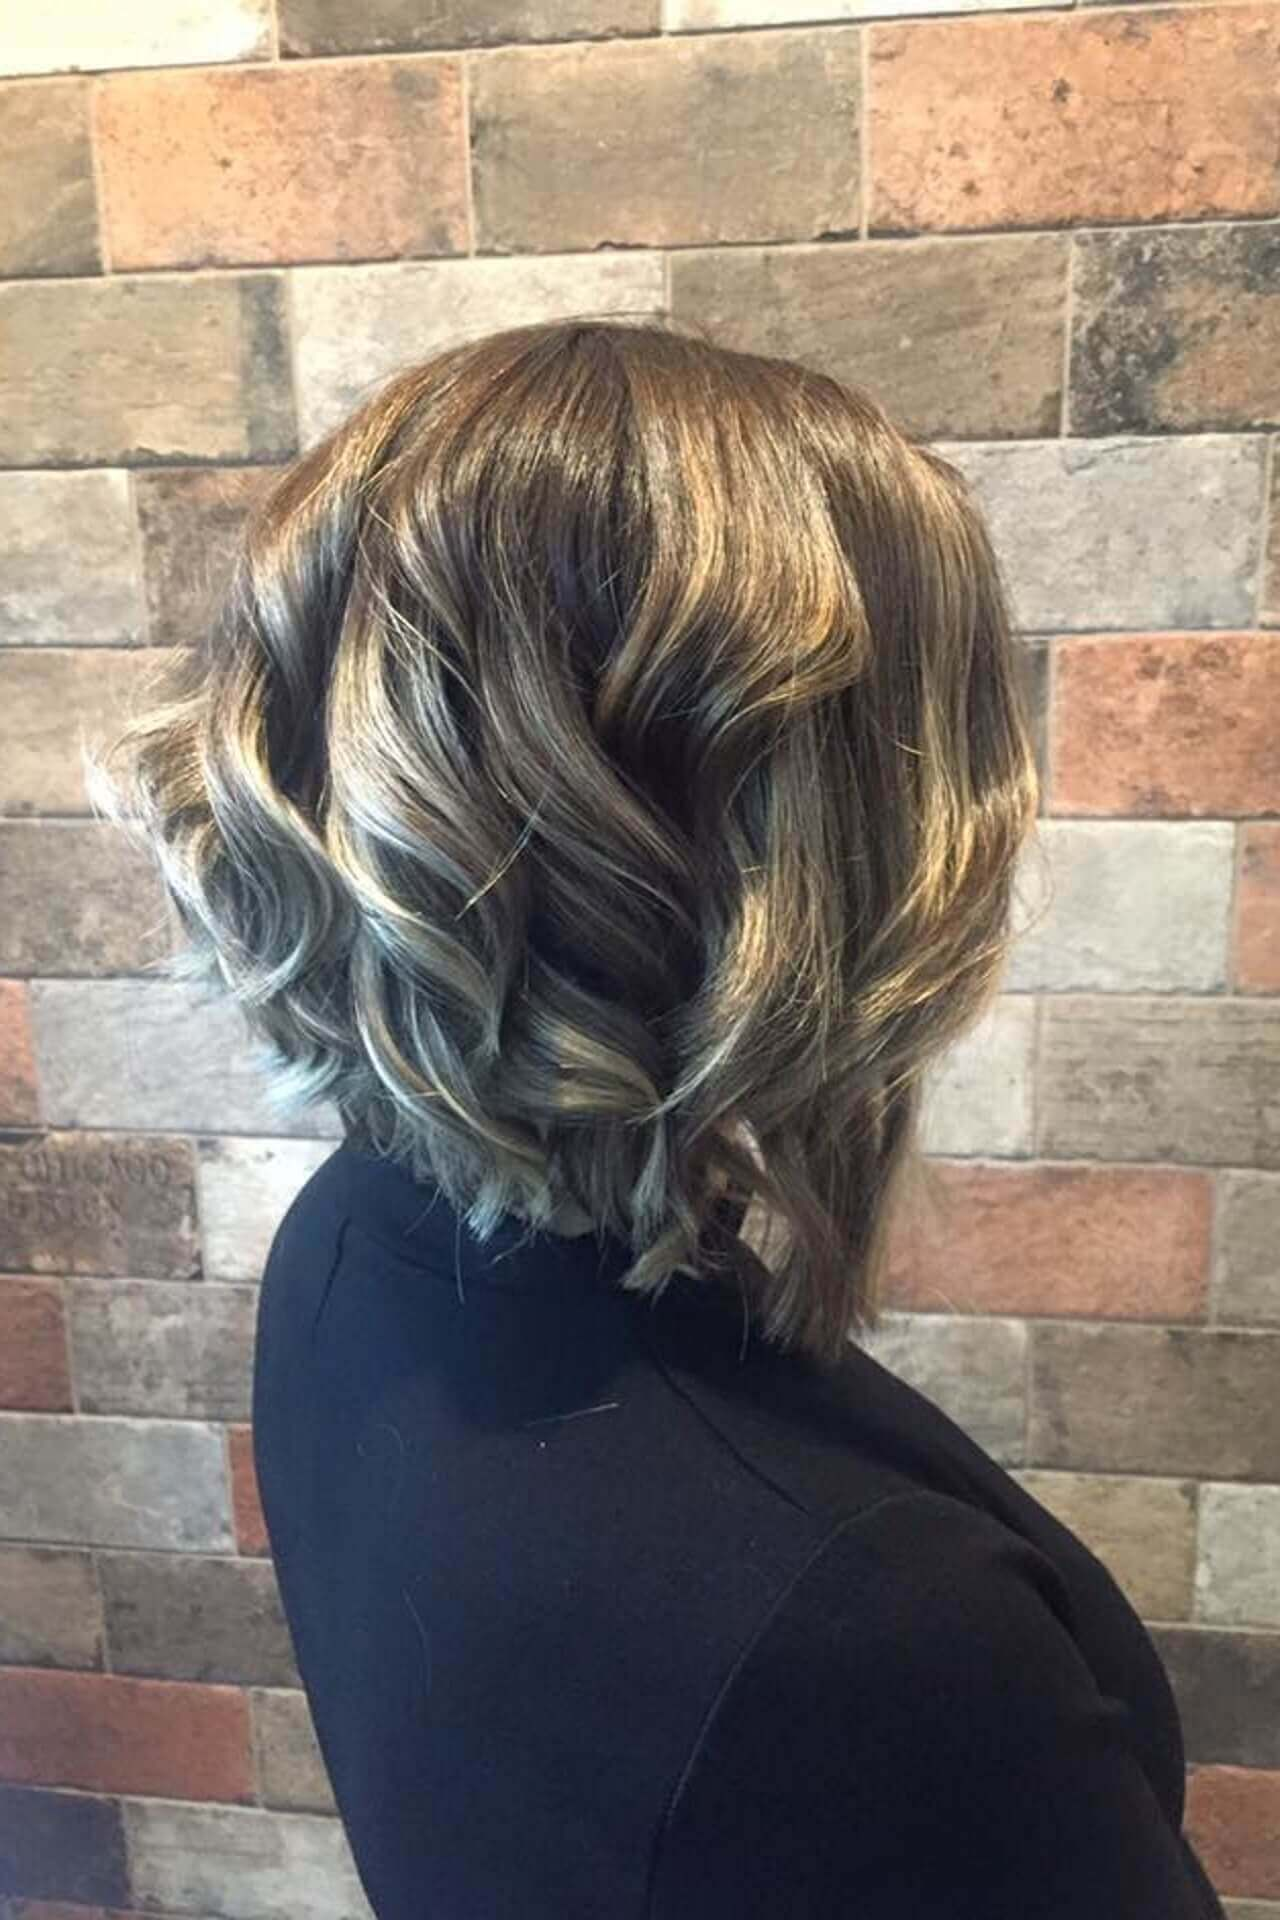 Samantha Jones Hair Co Our Work Image Gallery - Short Silver Highlights Newly Cut Natural Wave